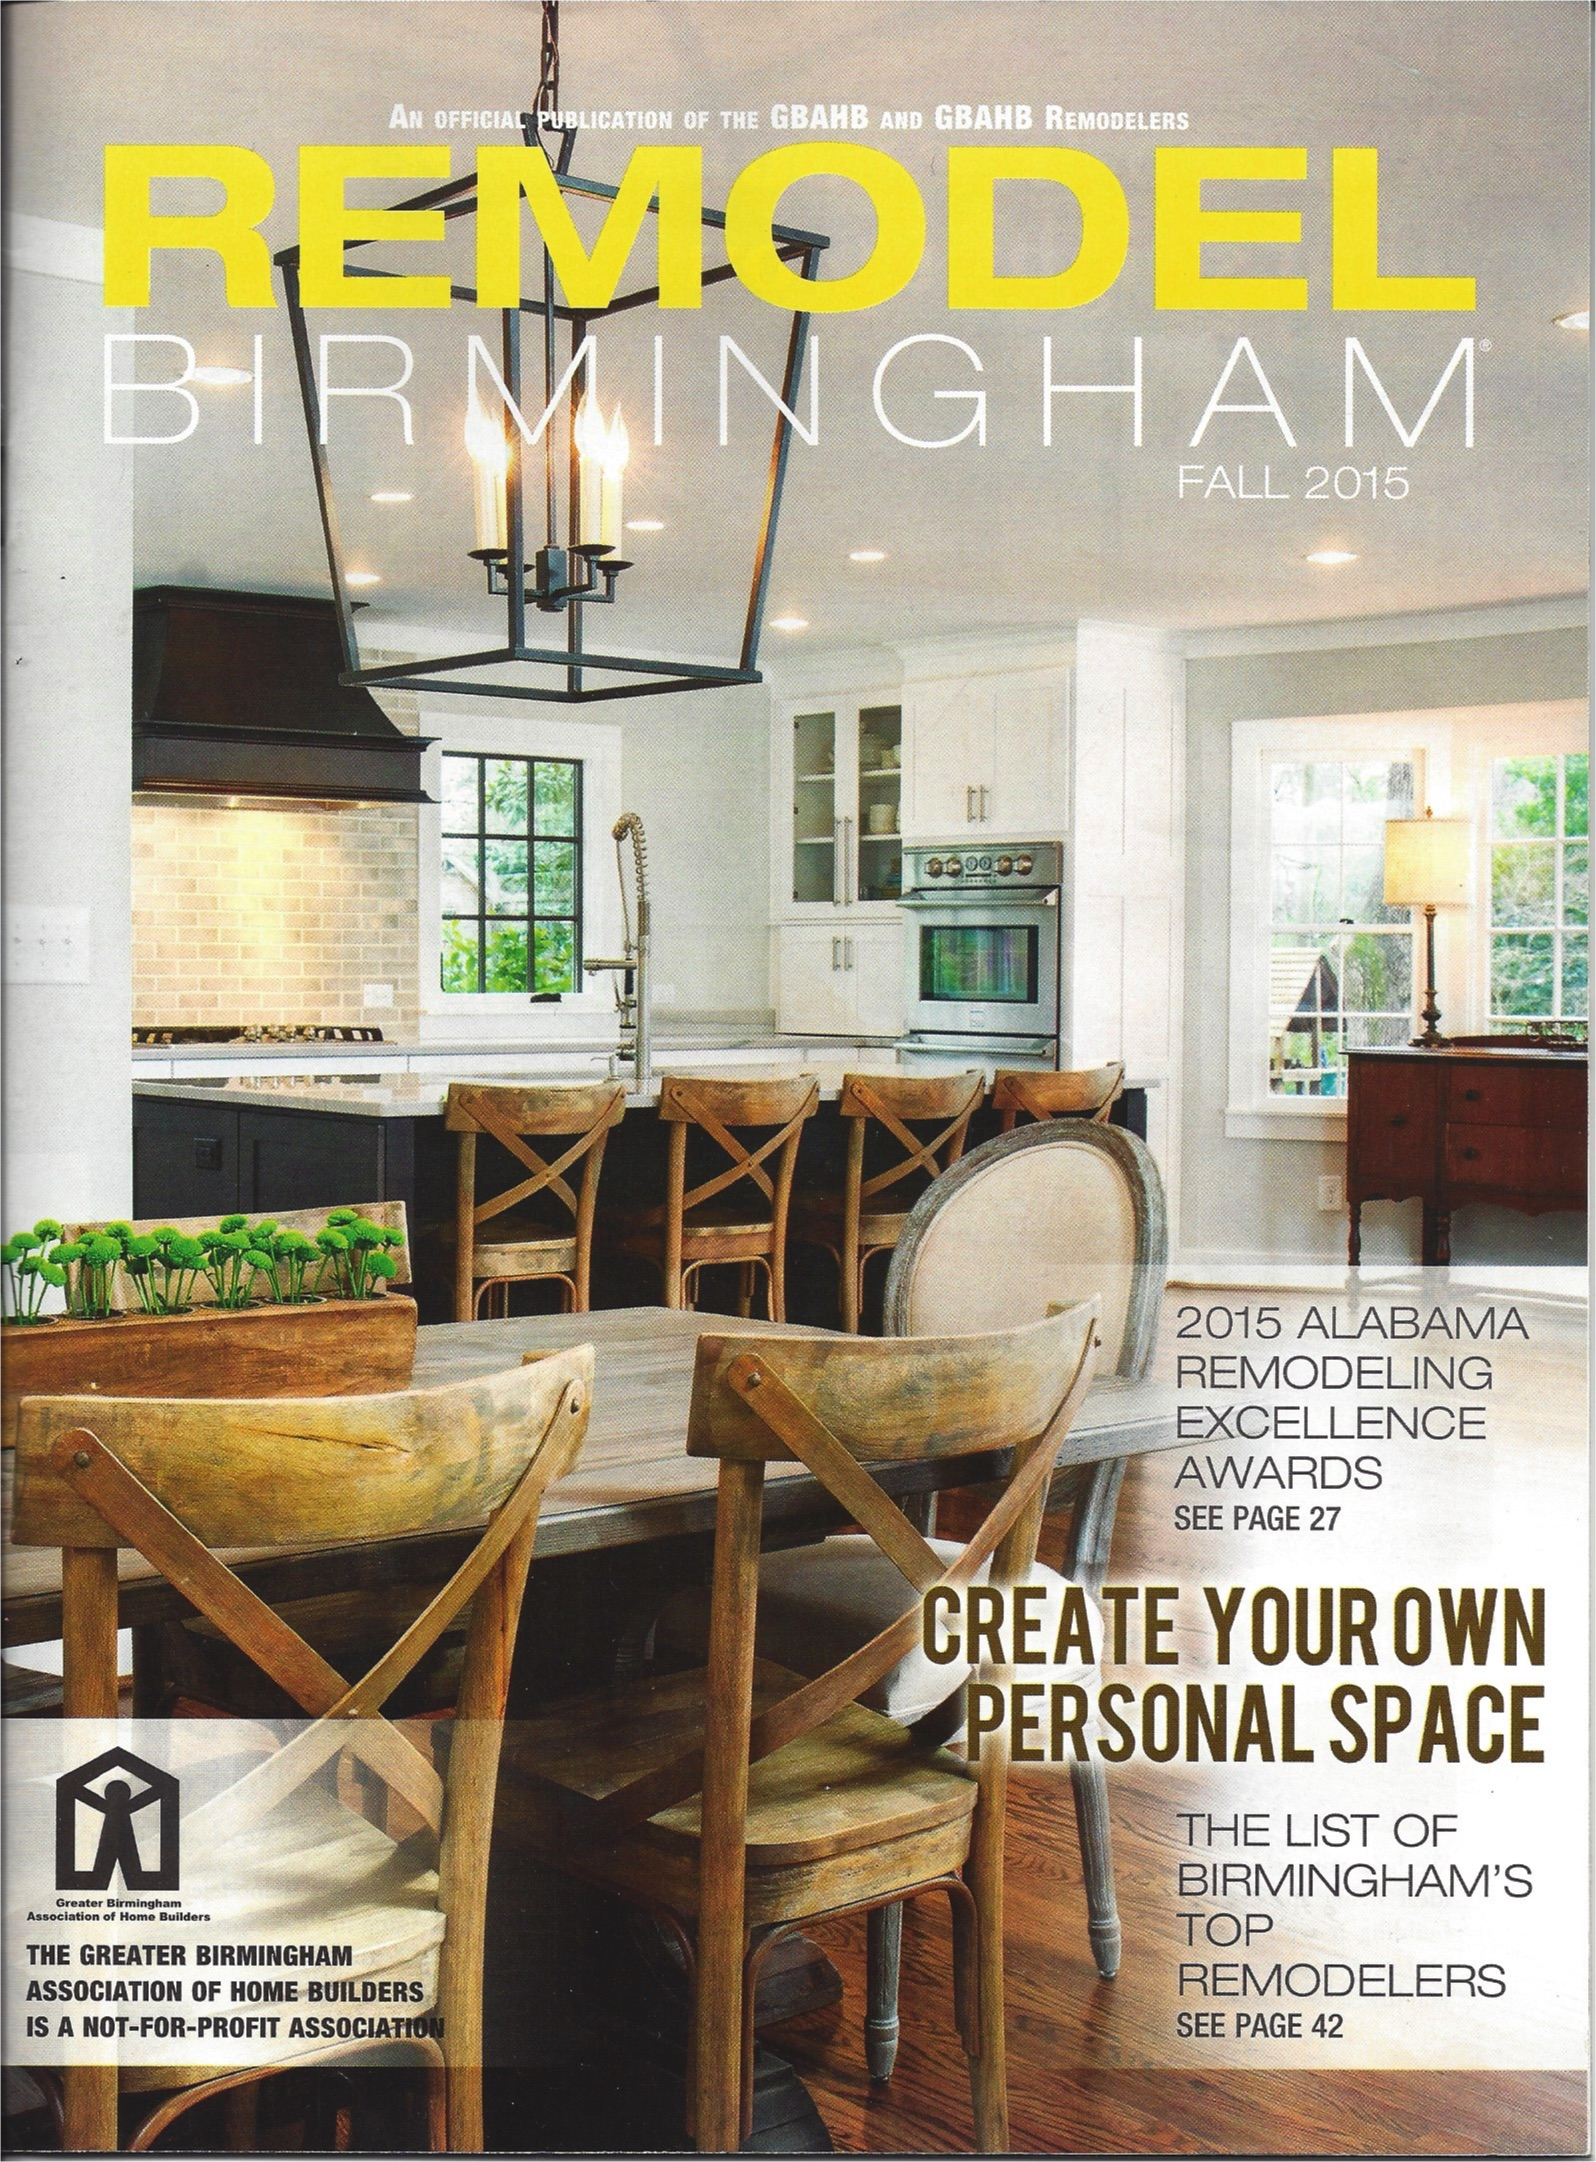 Our contest entry was featured in the Remodel Birmingham publication.